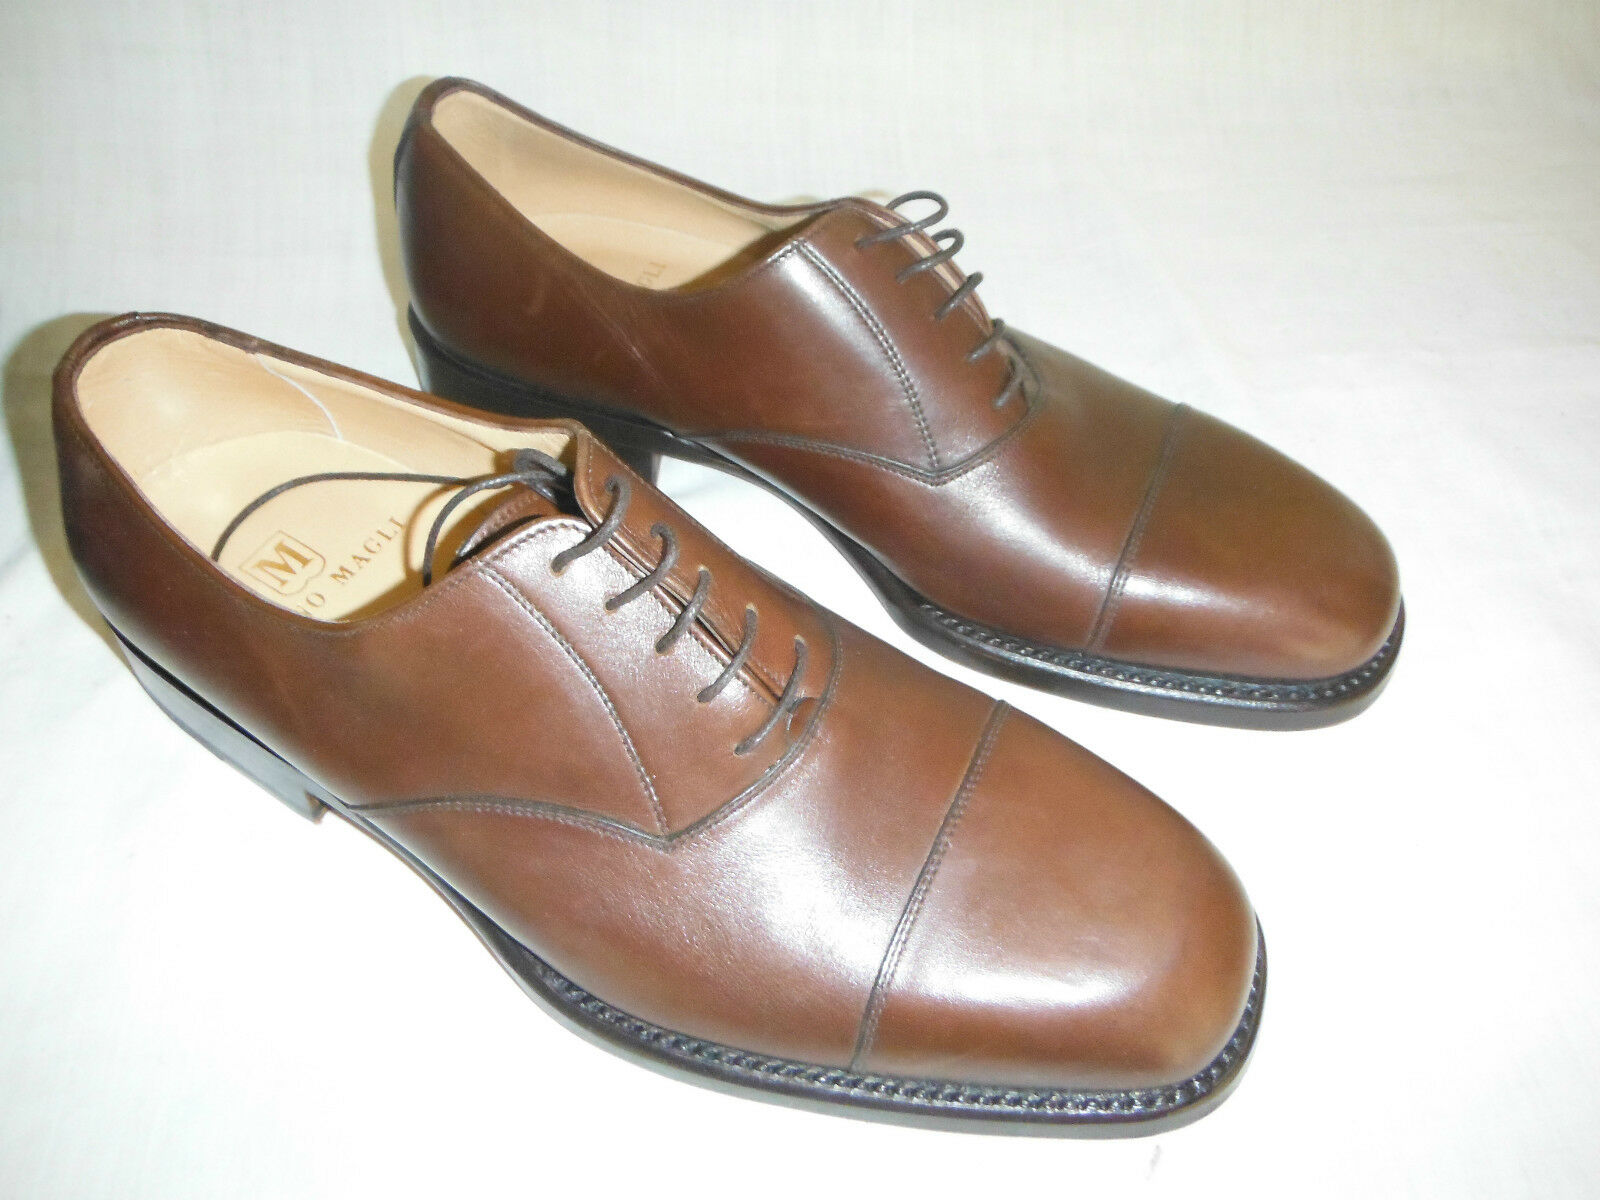 Mens 7.5 size 8.5 europe Bruno Magli brown leather shoes   STILL IN BOX